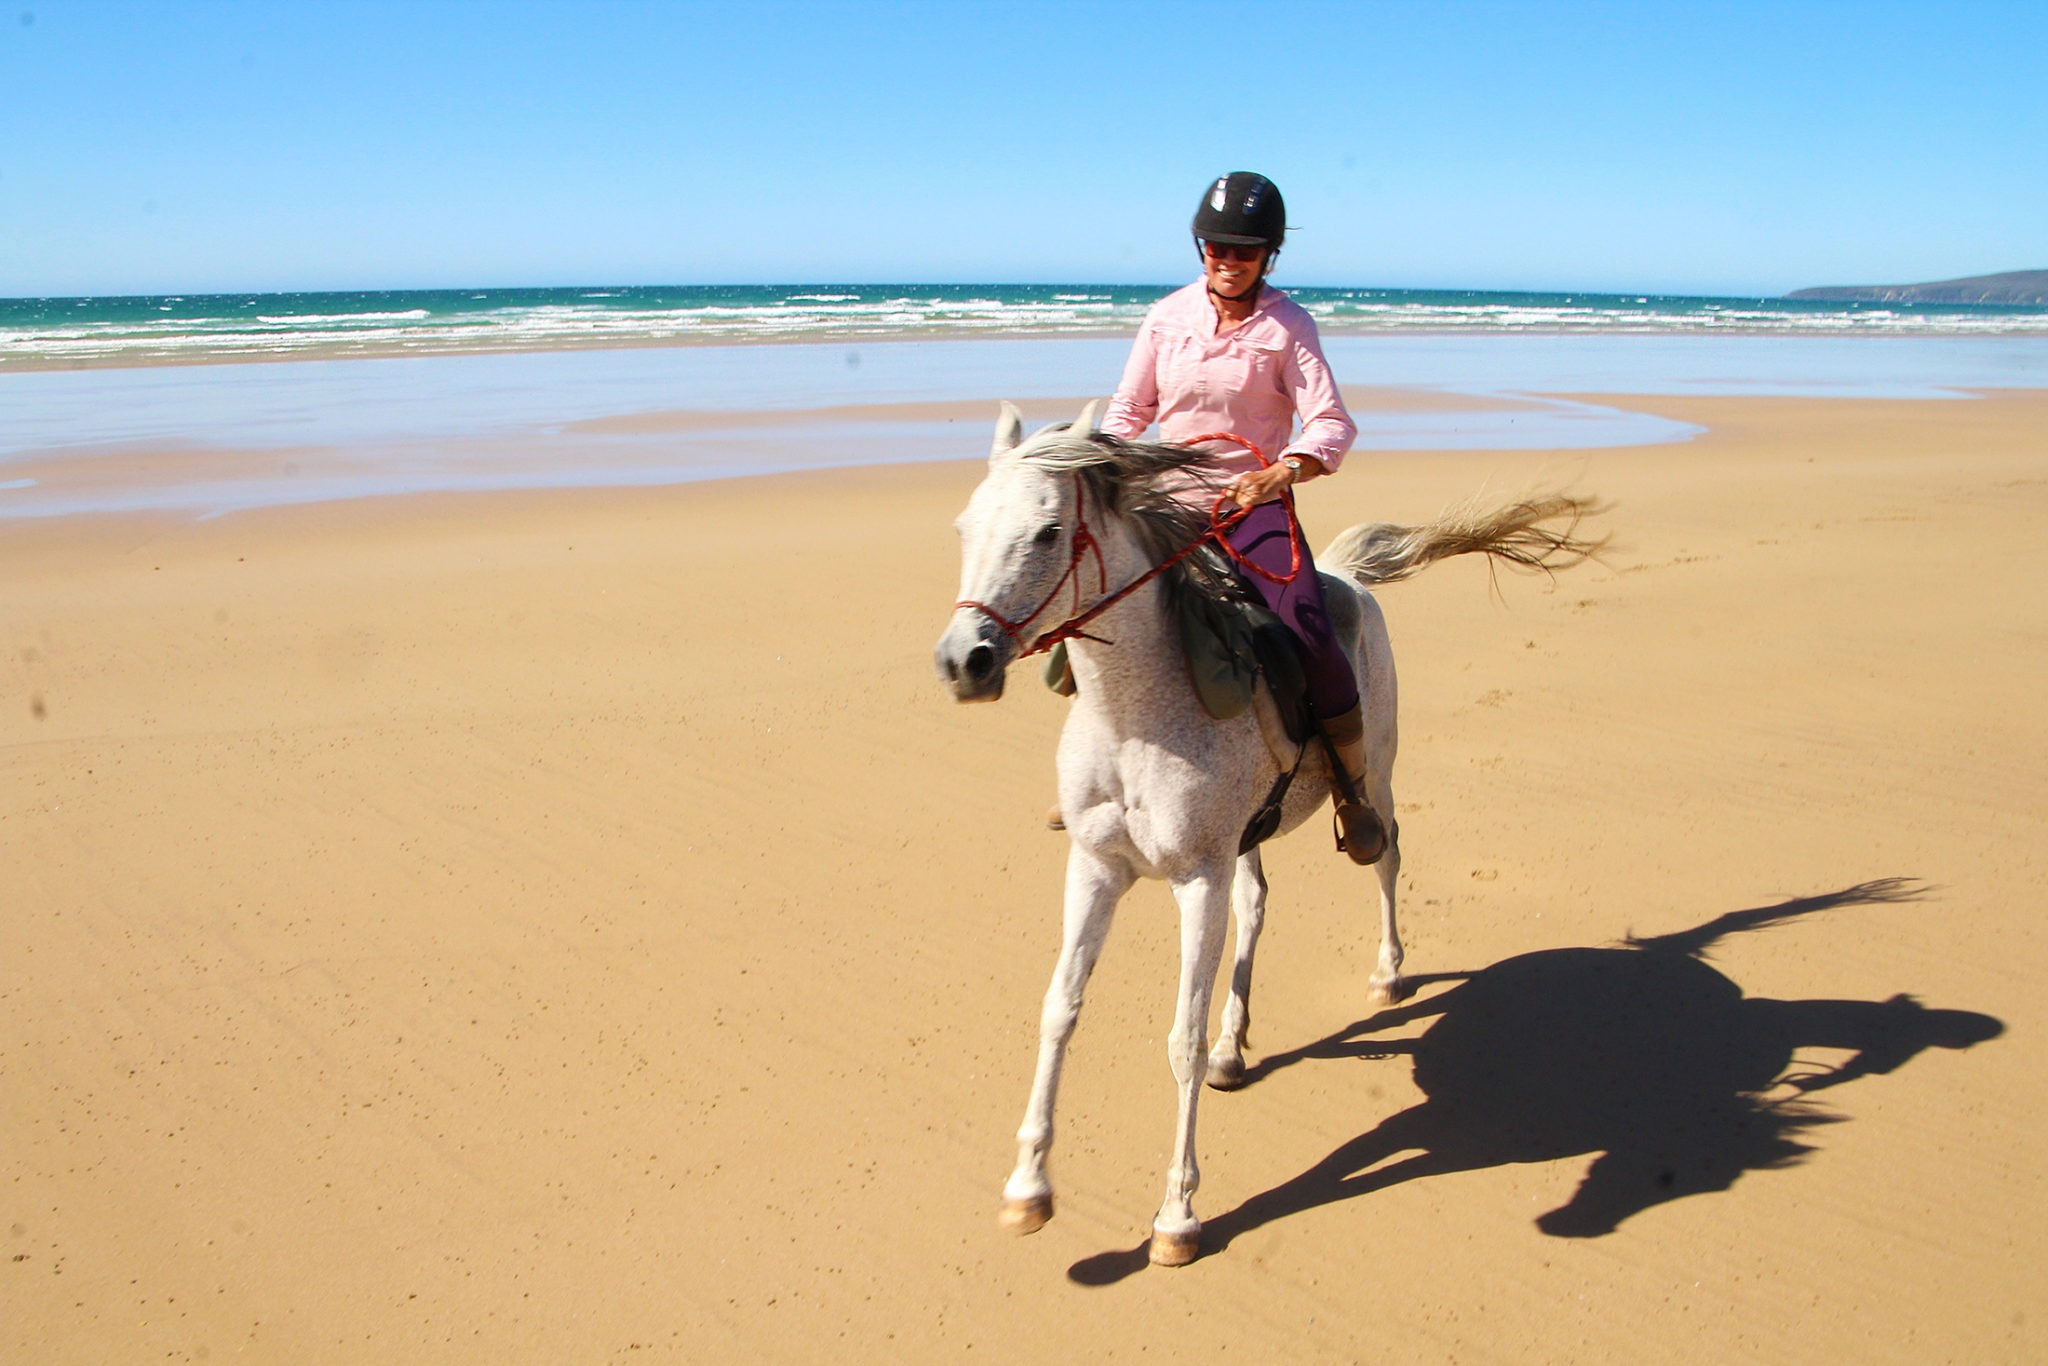 Tassie Tiger Trail - Globetrotting horse riding holidays